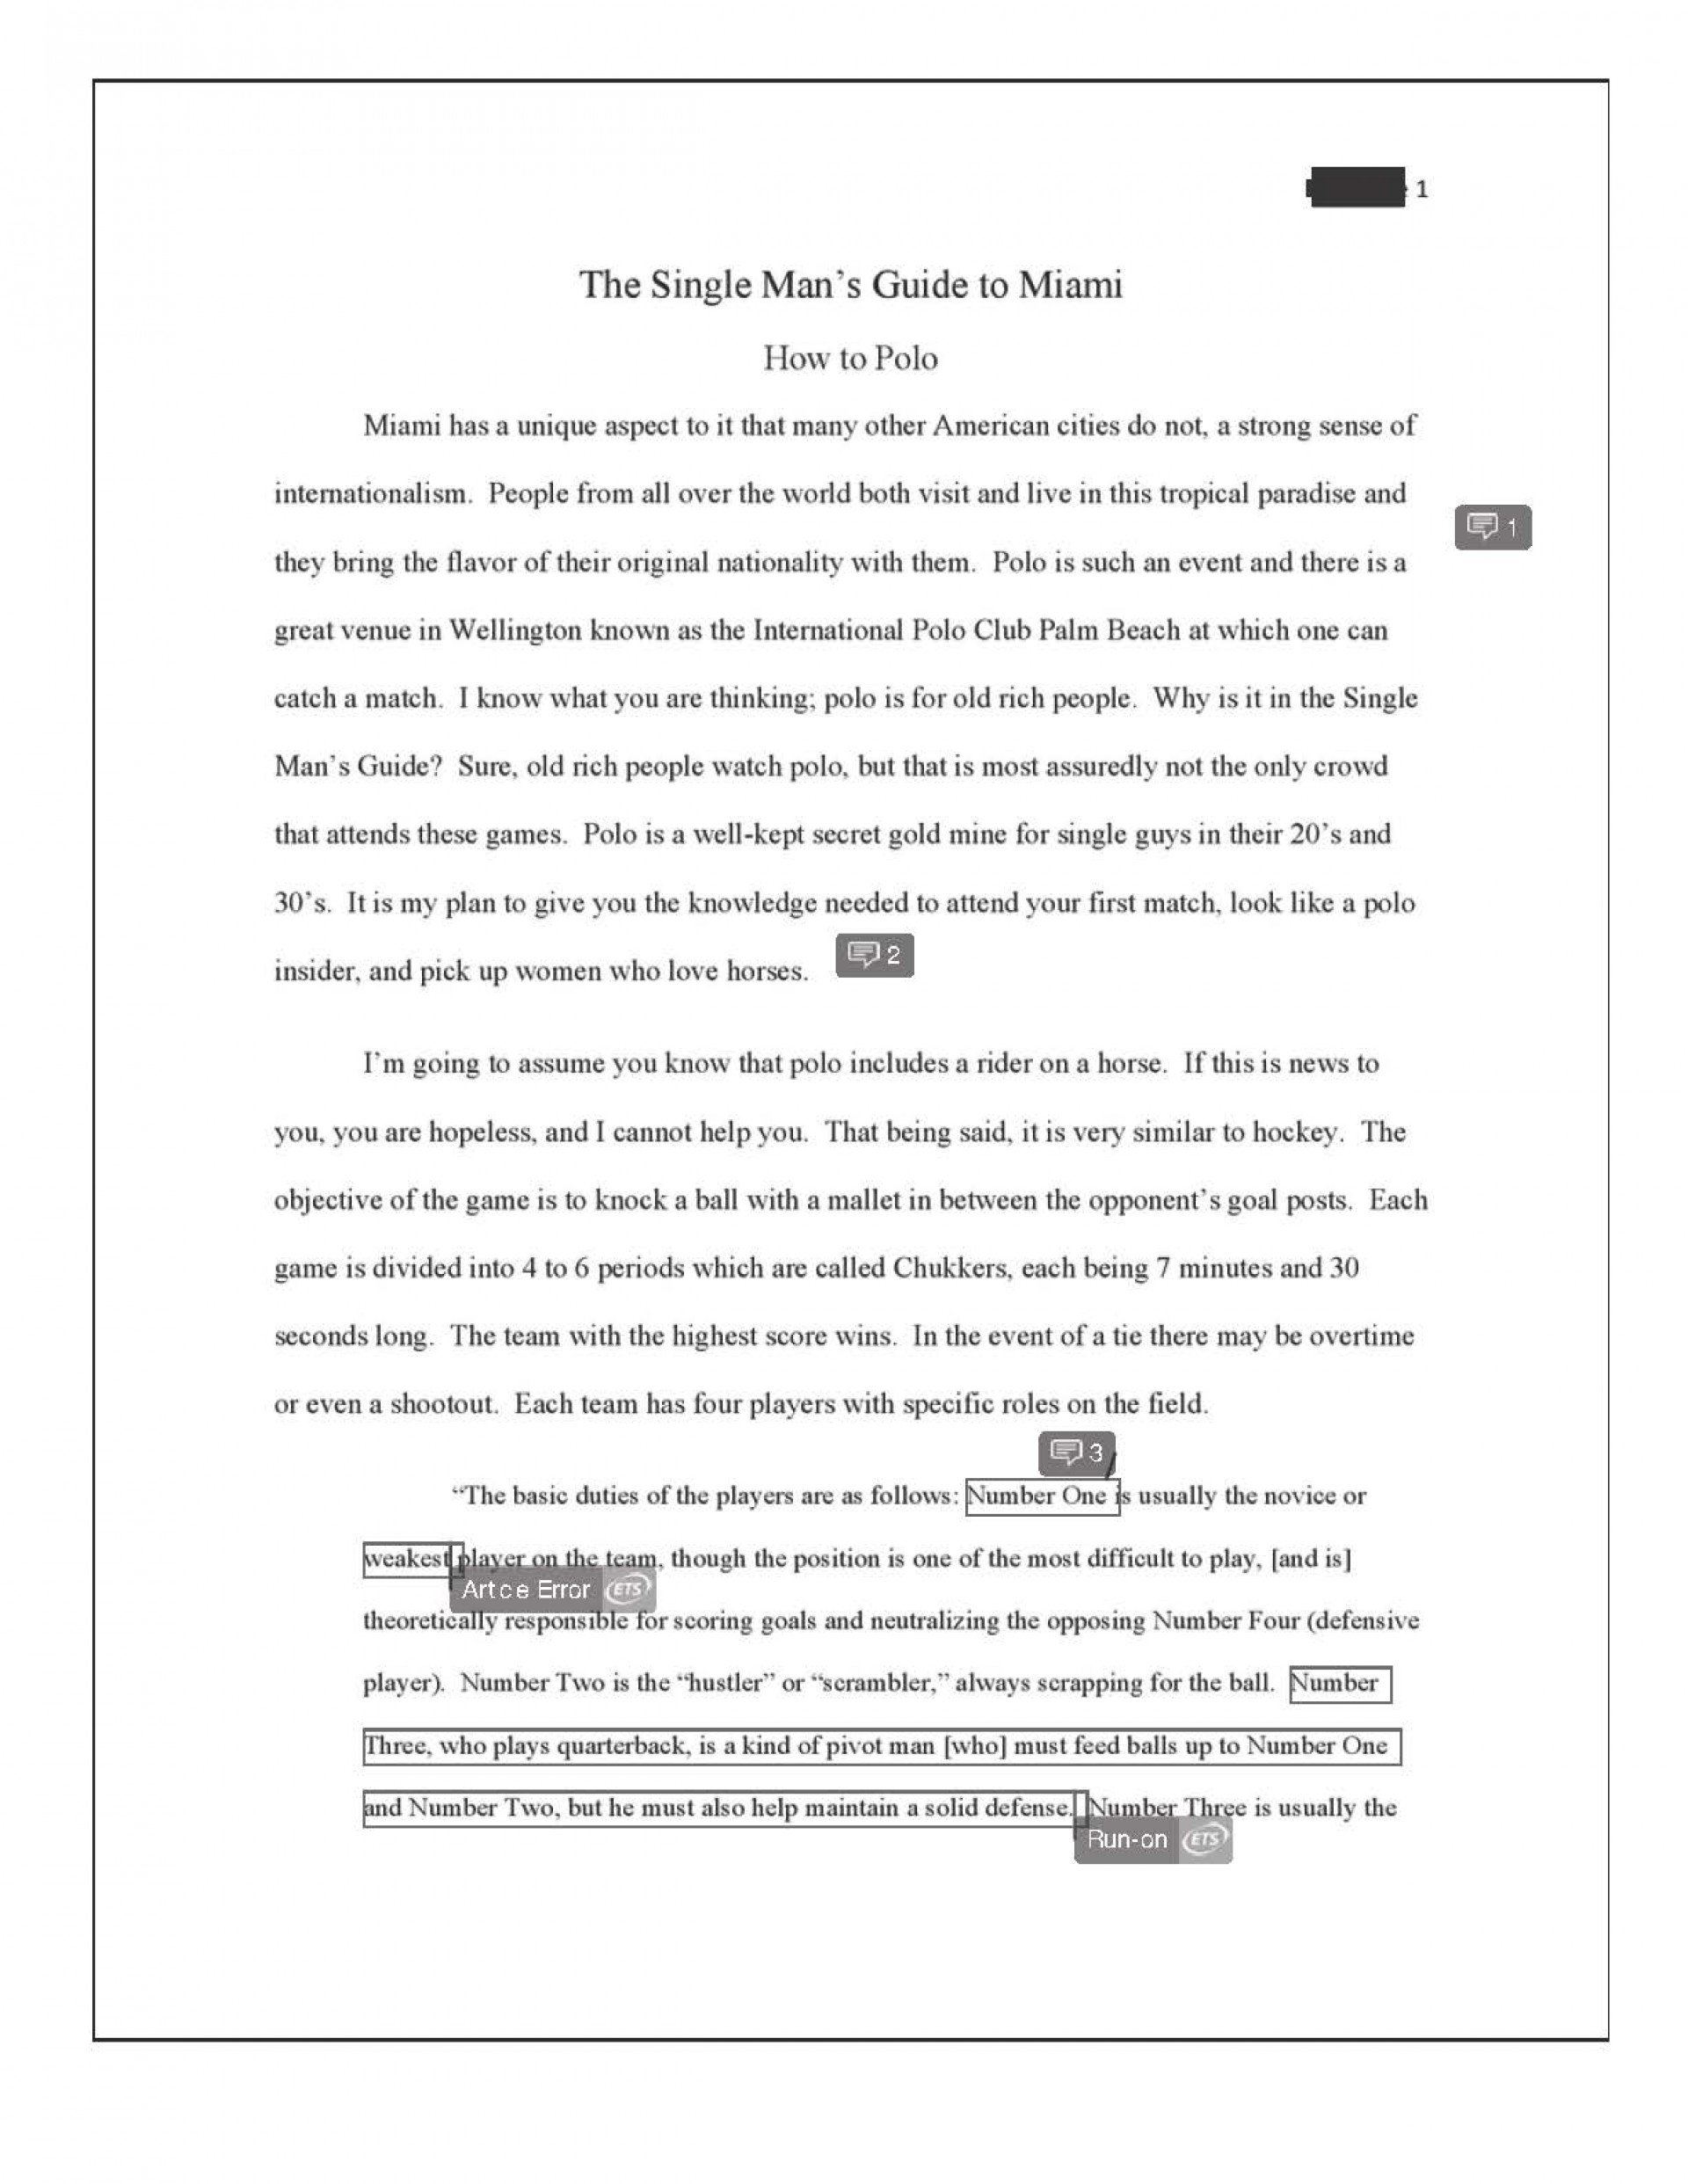 007 Essay Example Informational Informative Final How To Polo Redacted Page 2 Unforgettable Topics For Middle School Students Writing Prompts With Articles Examples 1920